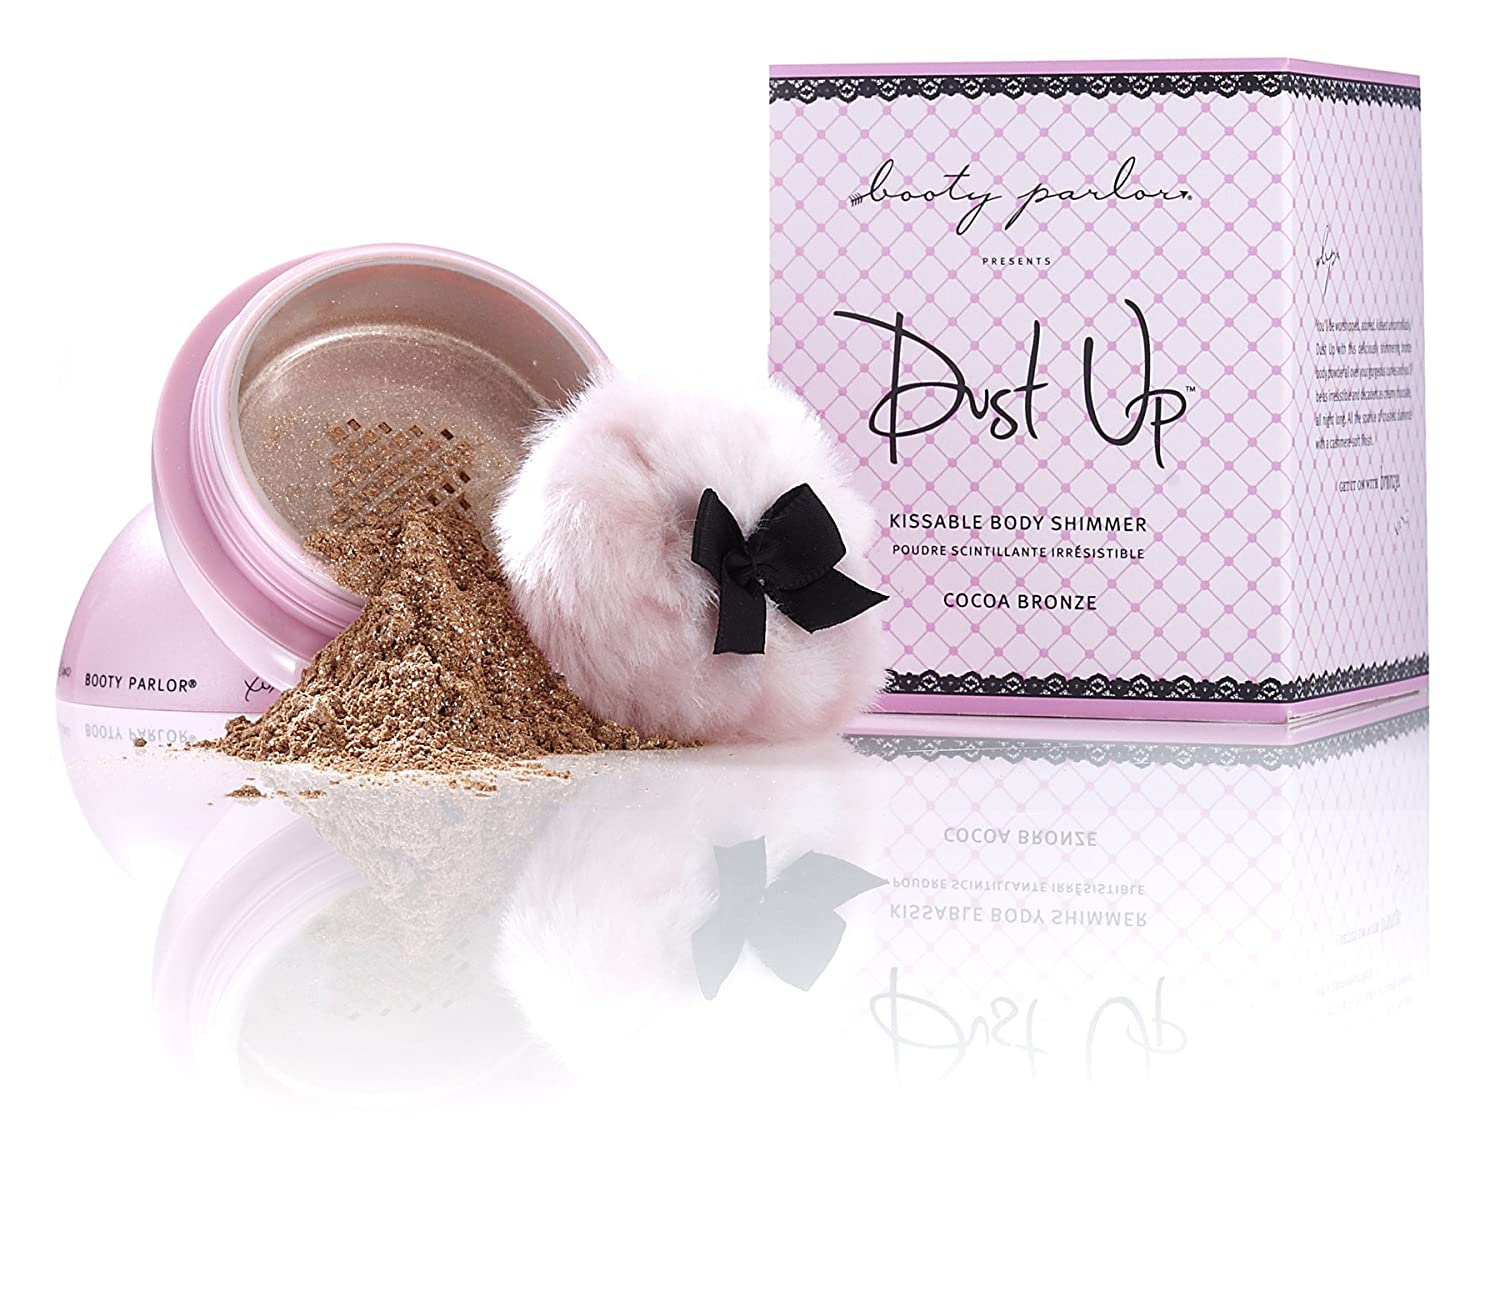 Booty Parlor Dust Up Kissable Body Shimmer Dusting Powder - Cocoa Bronze Inc CMC-0025 CB